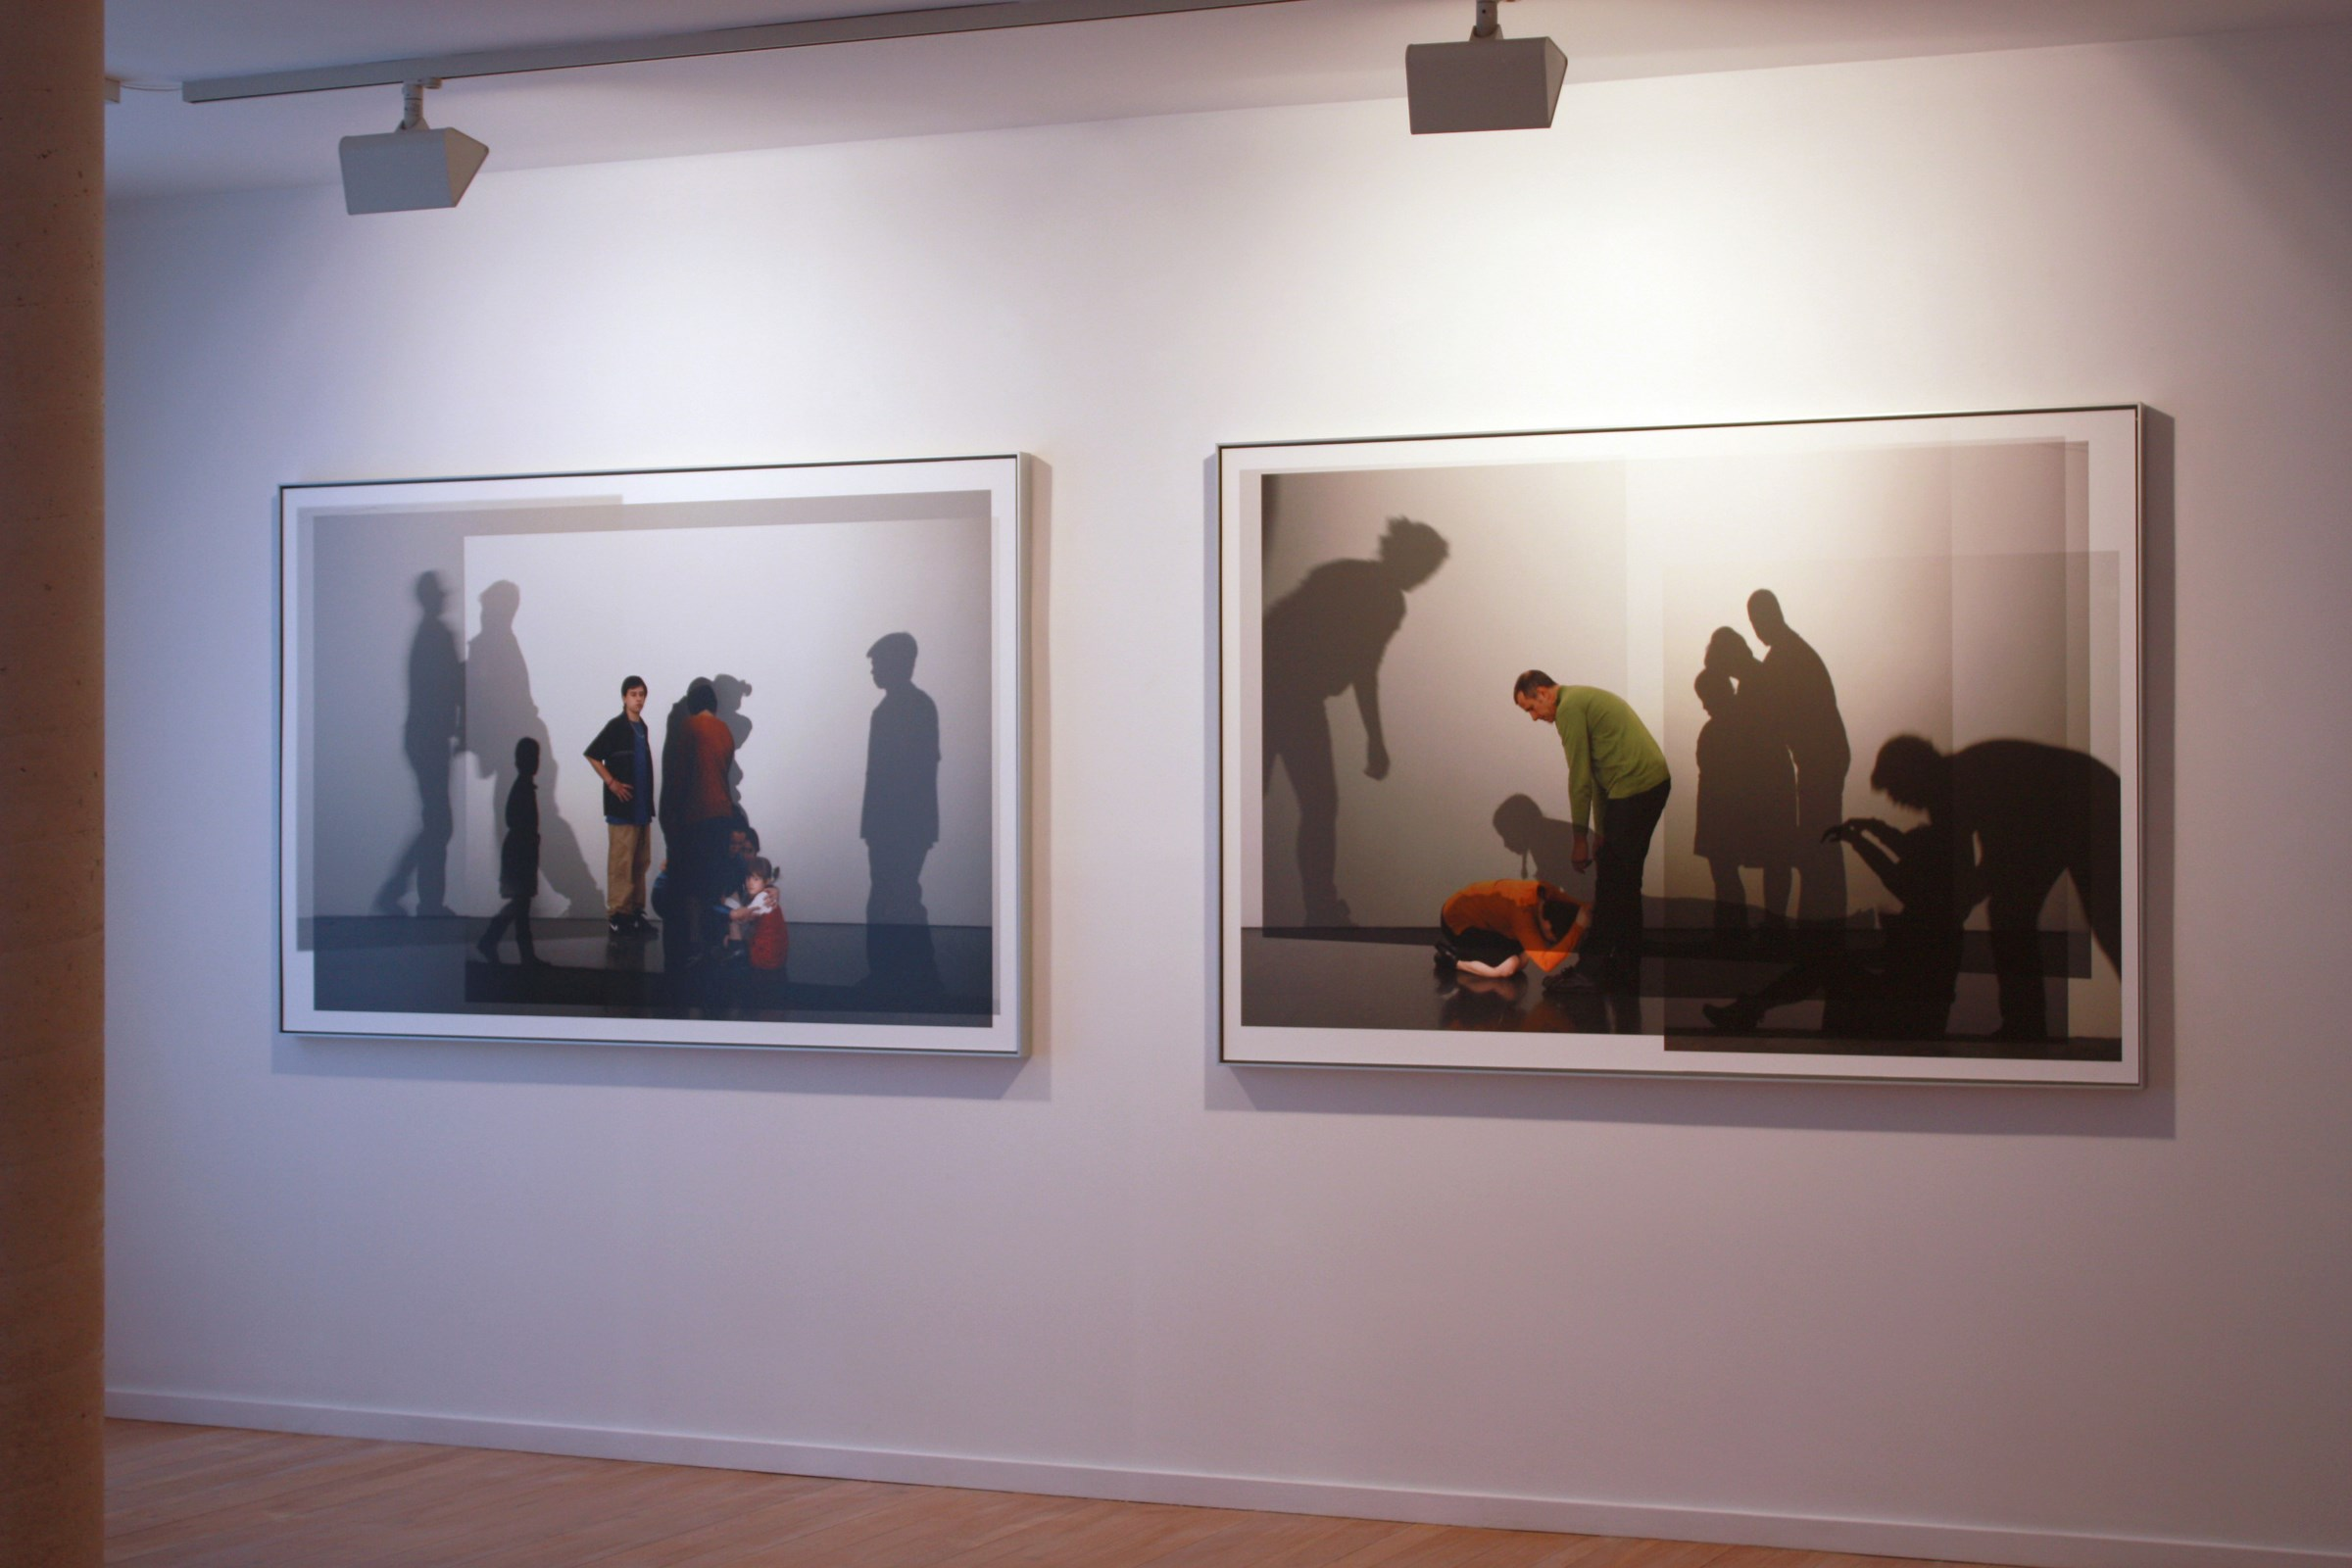 Exhibition view in the Galería Maior of Pollença, 2013